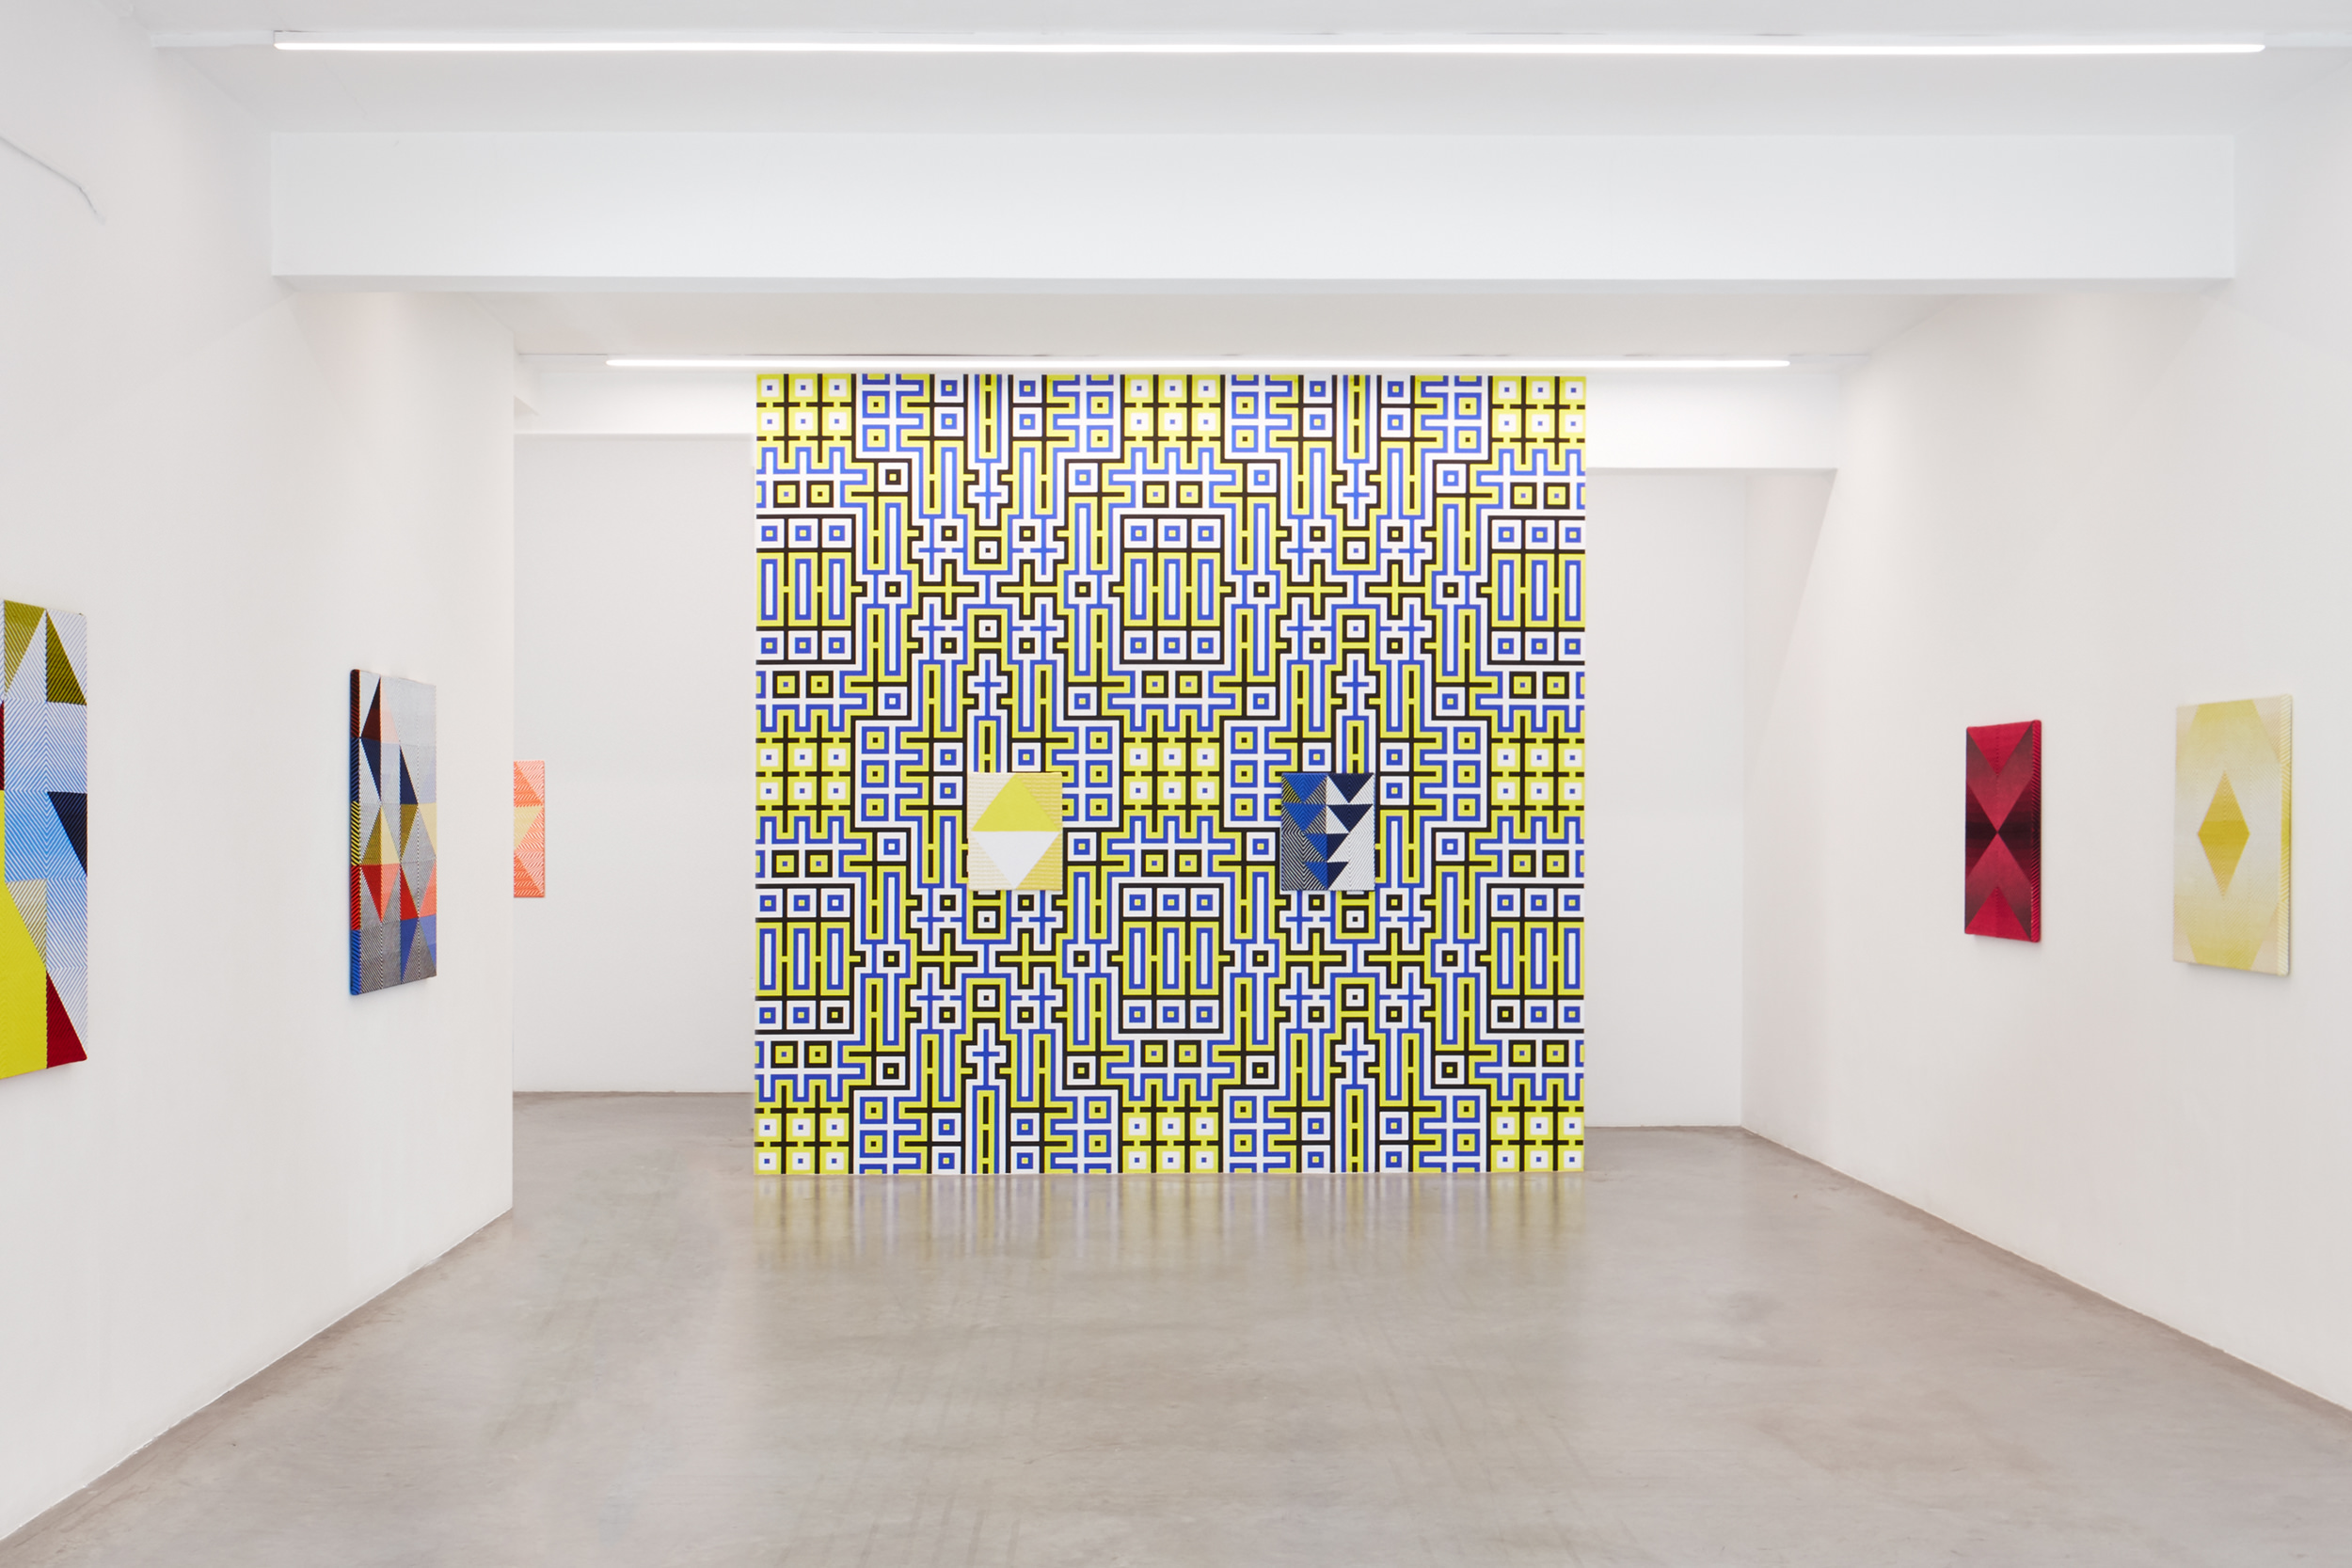 Samantha Bittman, Shift, Installation view 5